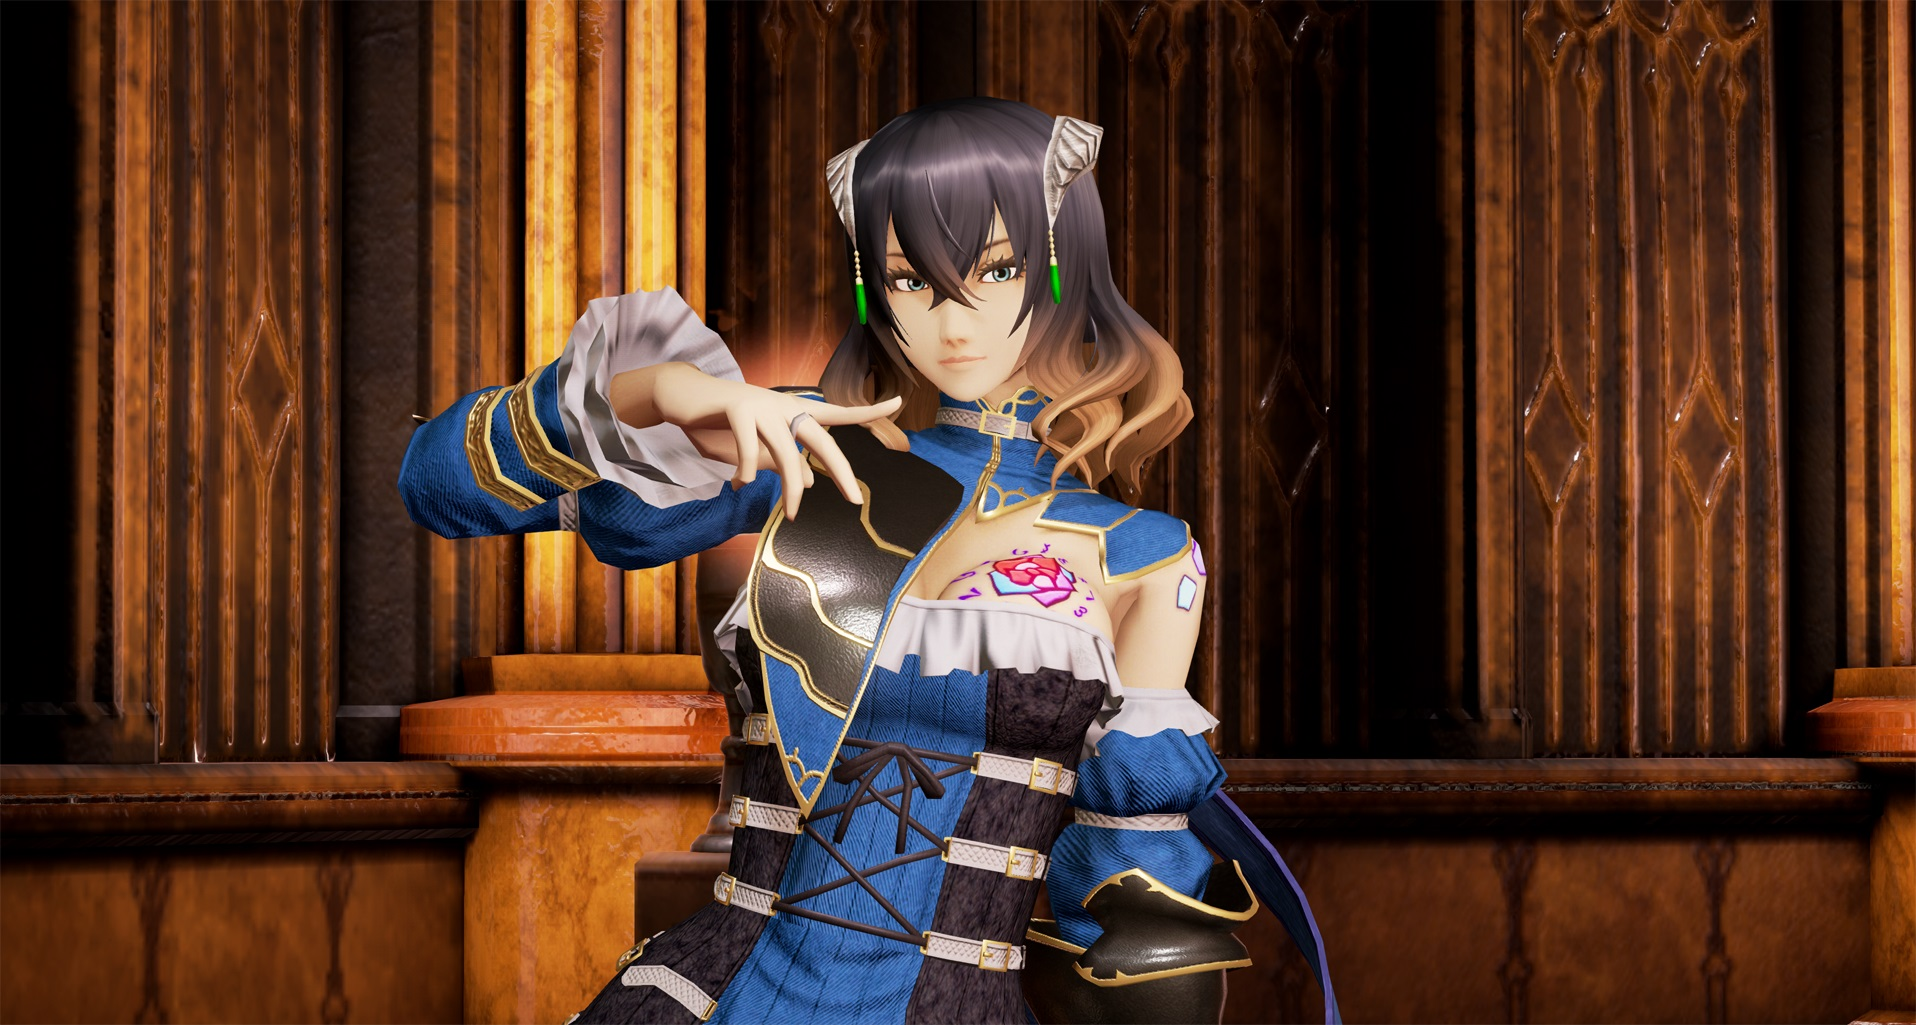 Bloodstained-Ritual-of-the-Night-screenshot-002